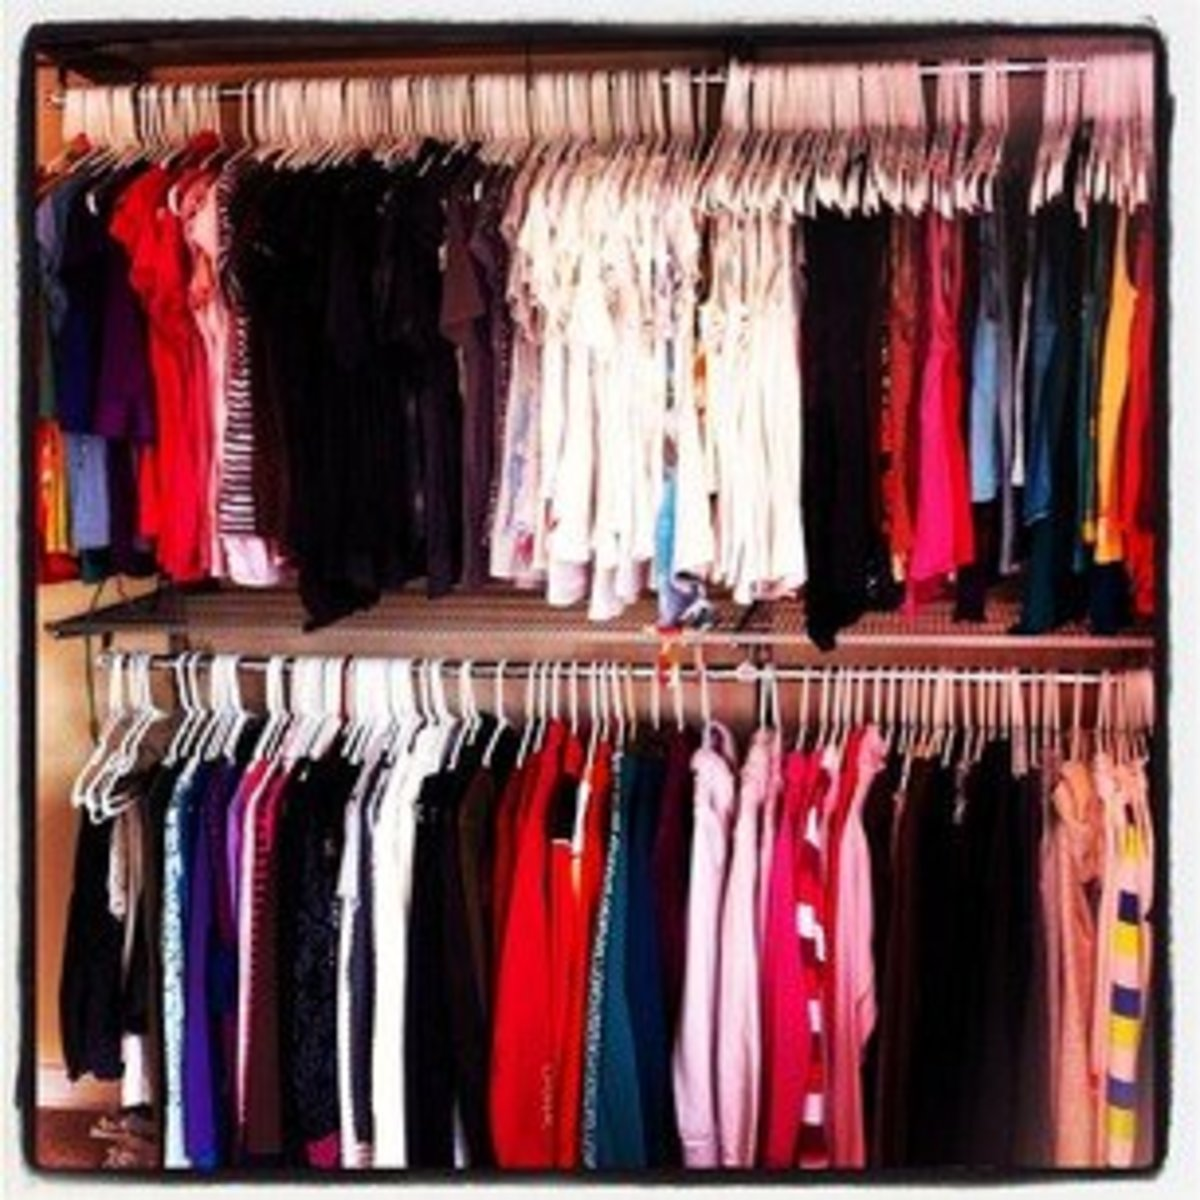 It Can Be Frustrating Looking Into Your Closet And Not Being Able To Find What You Want Wear Begin Dig Through Clothes Peering The